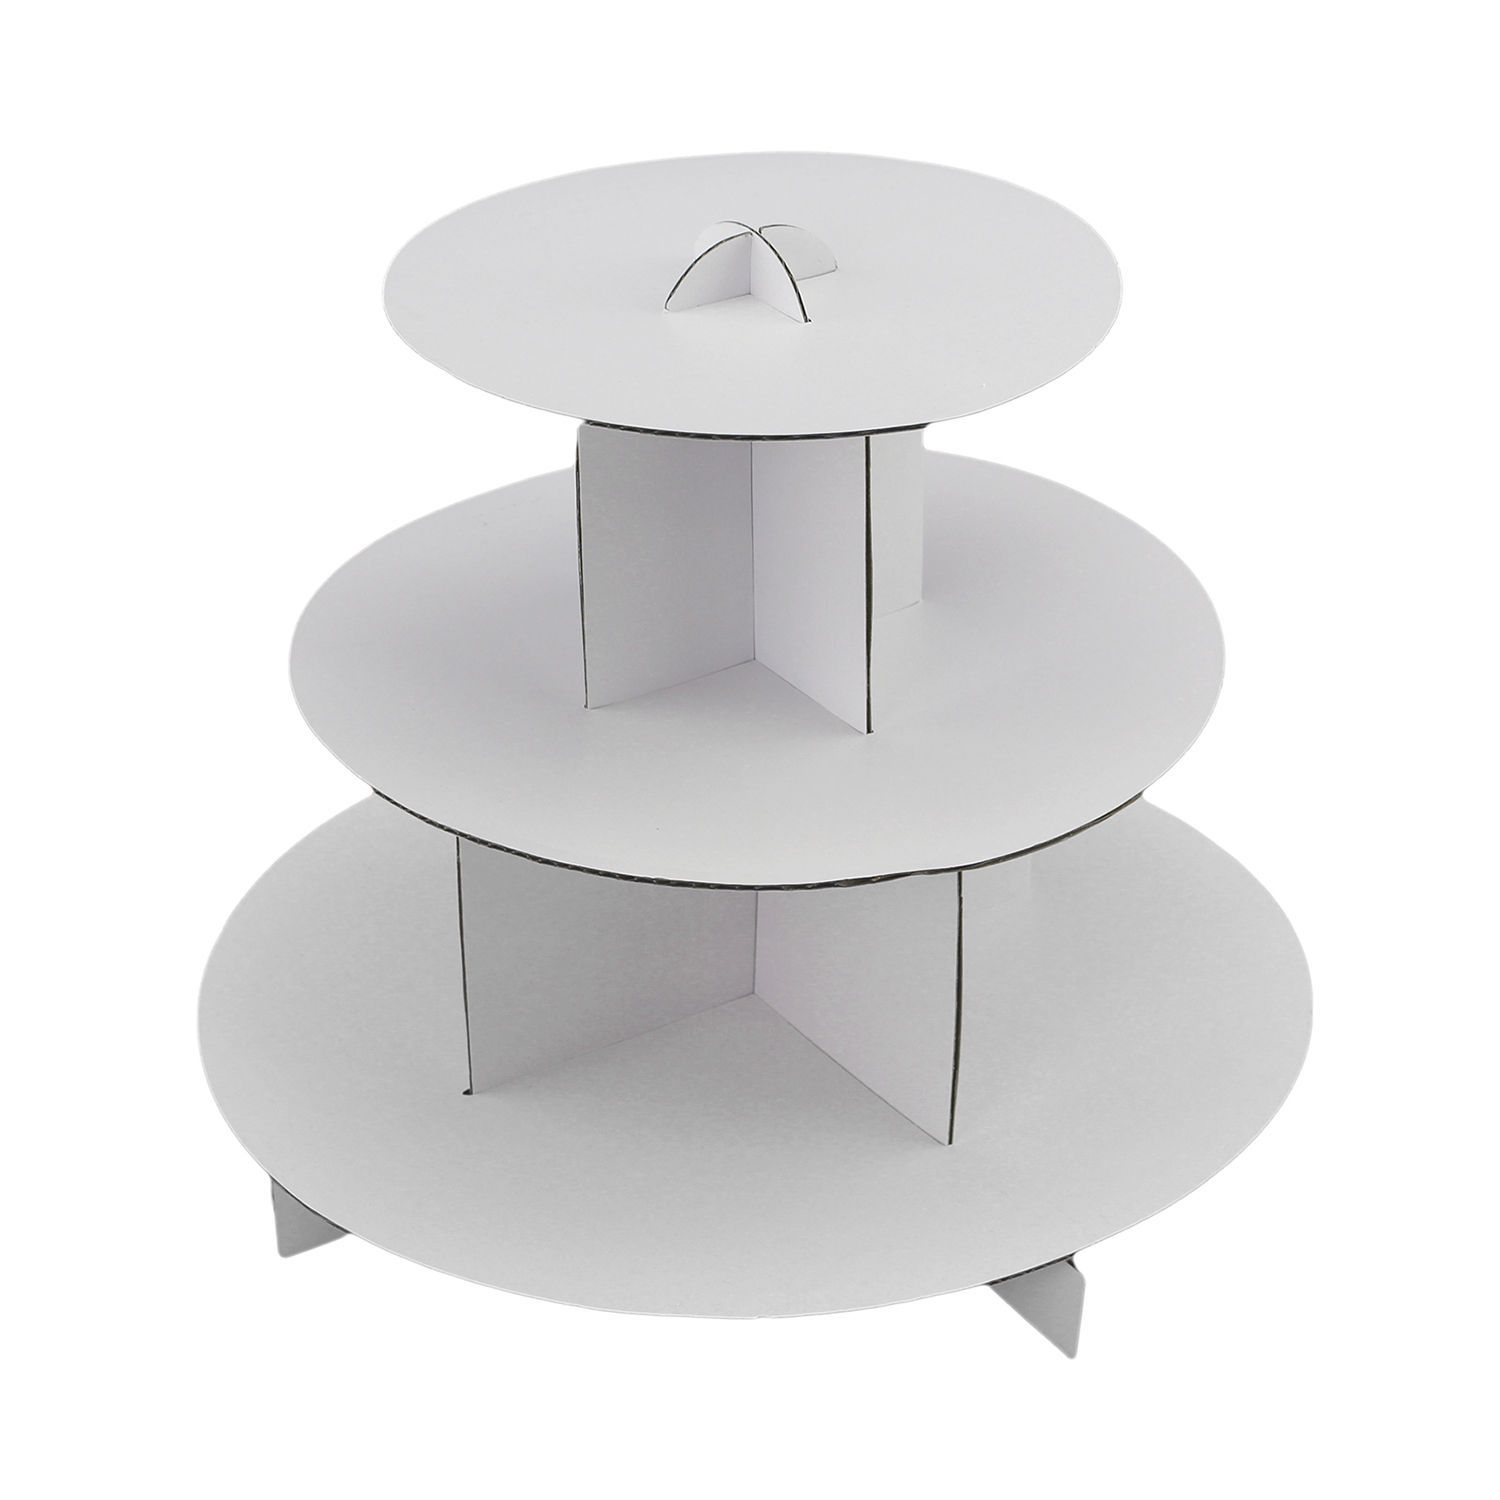 White Round or Square Cardboard Cupcake Display Stand Pastry Dessert Tower